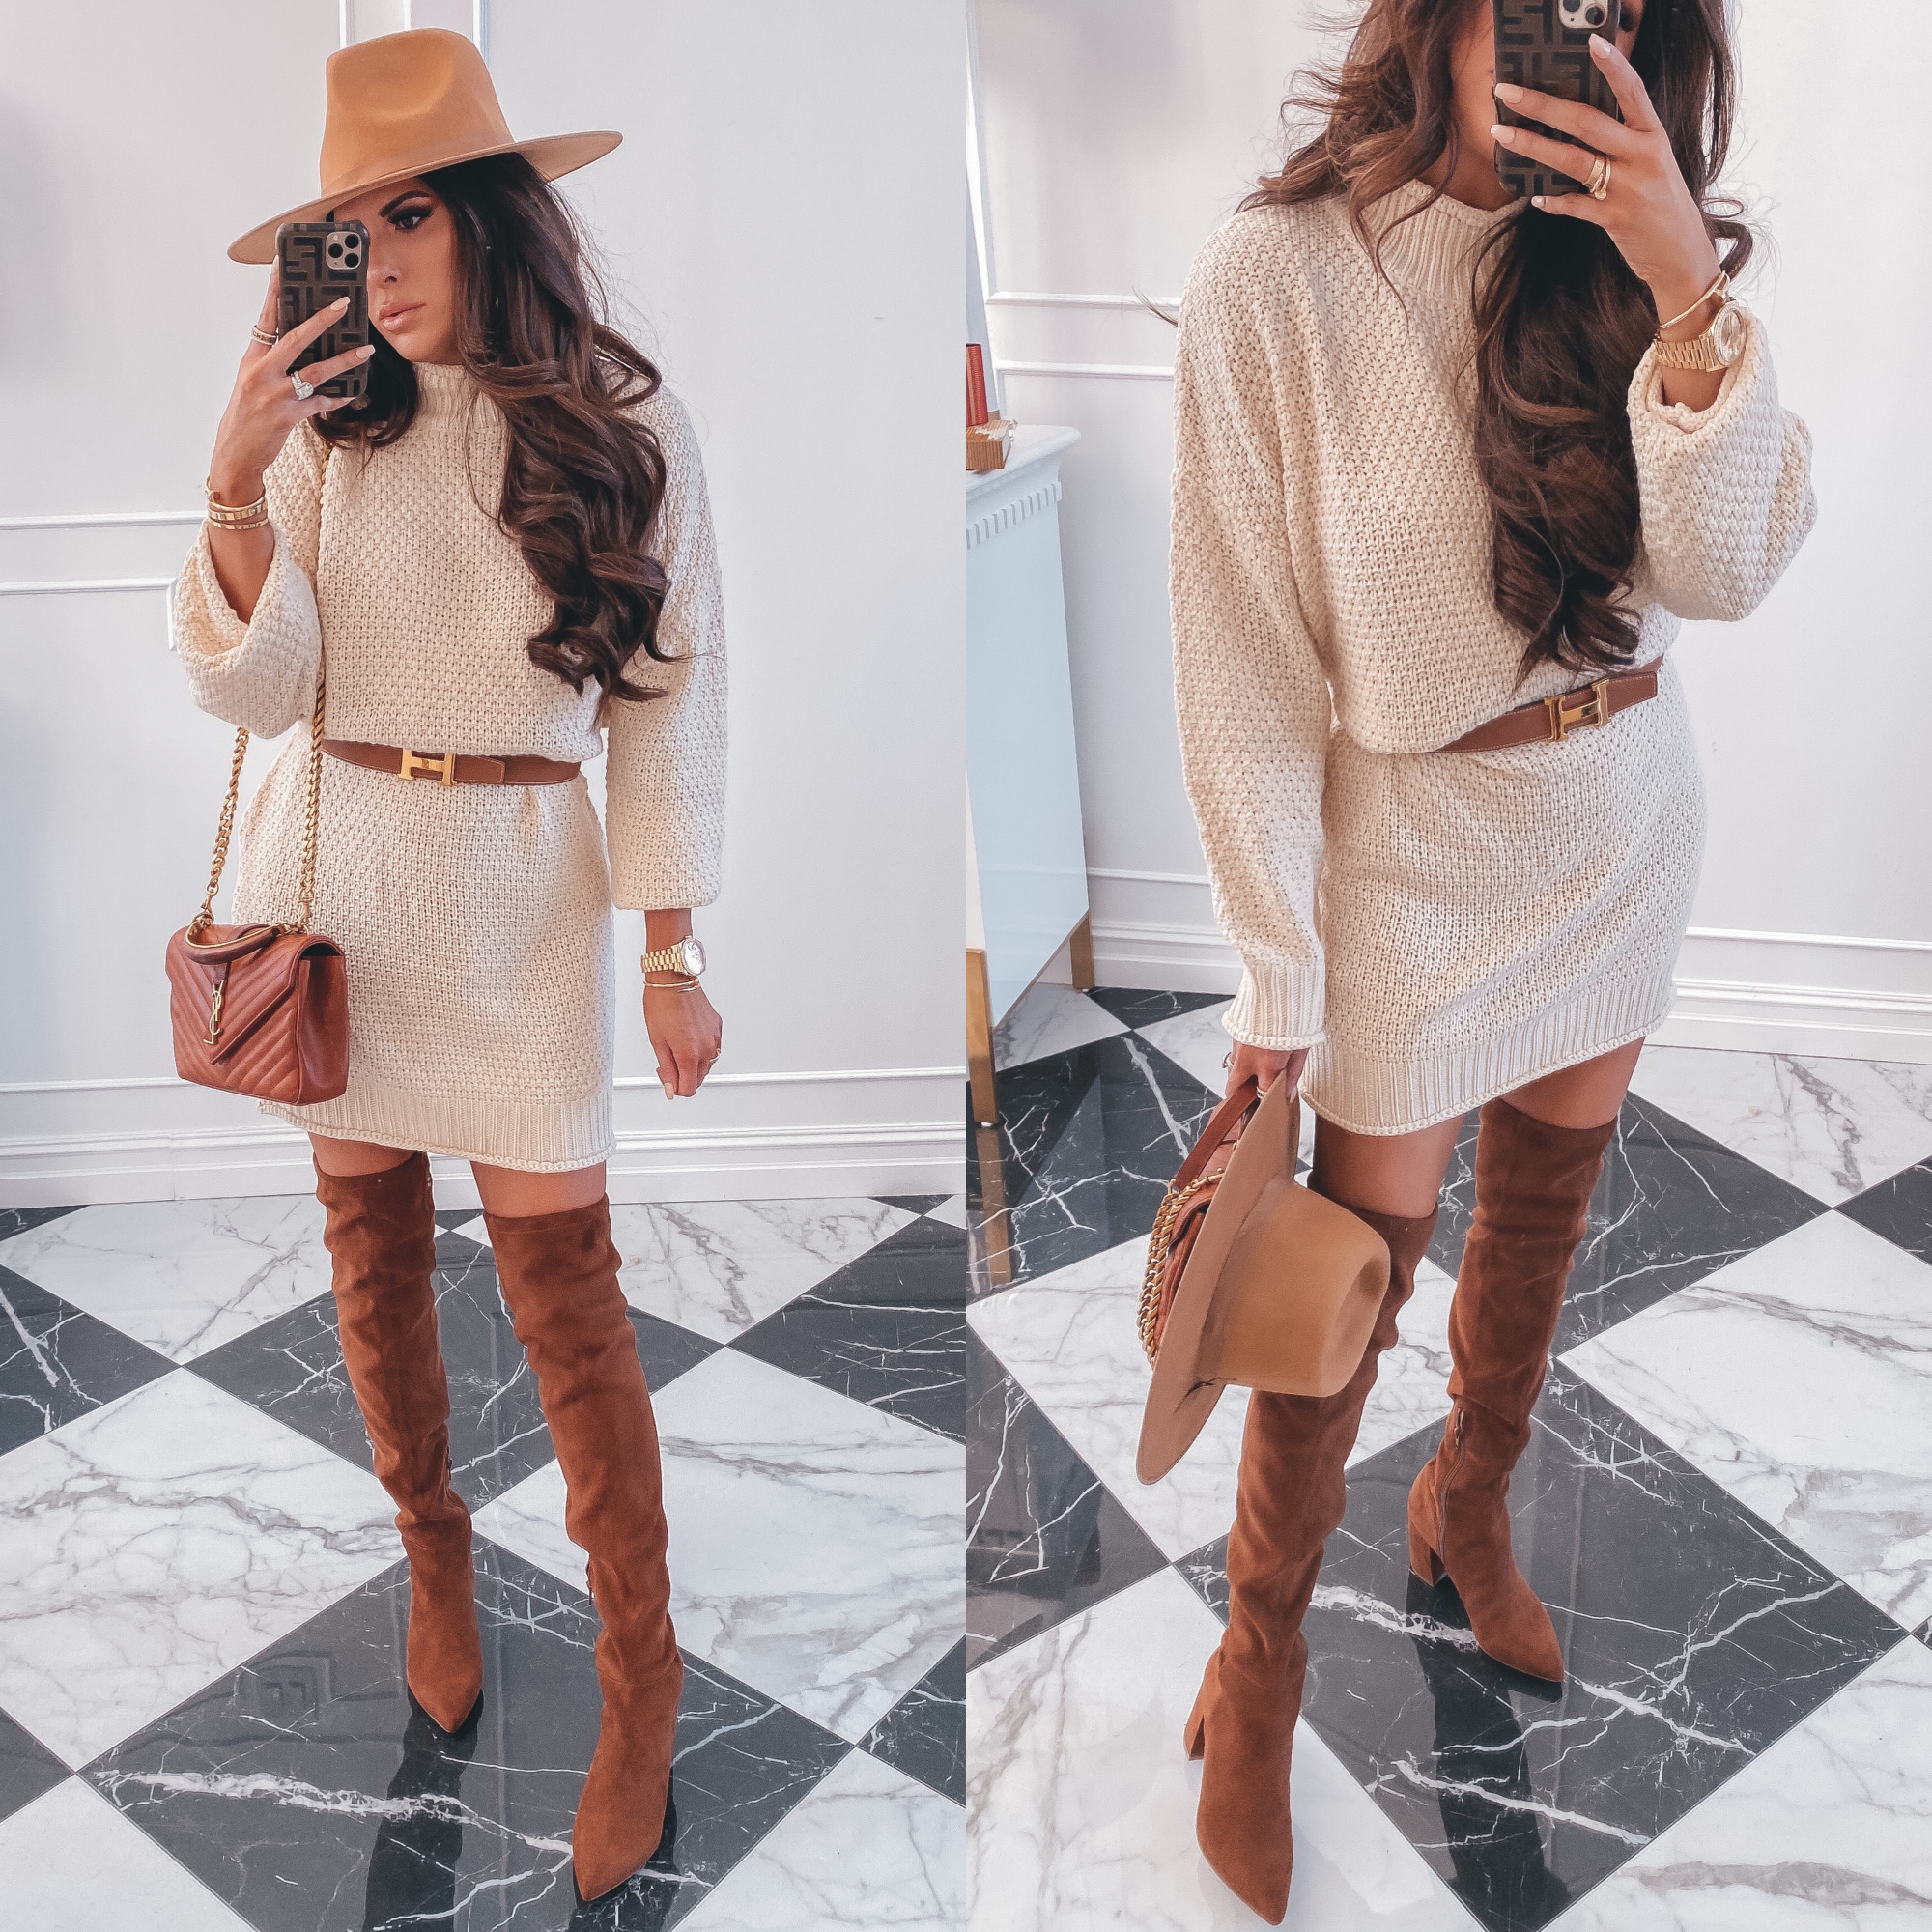 Thanksgiving Outfits by popular US fashion blog, The Sweetest Thing: image of Emily Gemma wearing a sweater dress with pockets, Hermes belt, tan felt fedora, Cartier rings and bracelets, Bracha necklace, Steve Madden Over the Knee boots, The Styled Collection earrings, and a YSL purse.